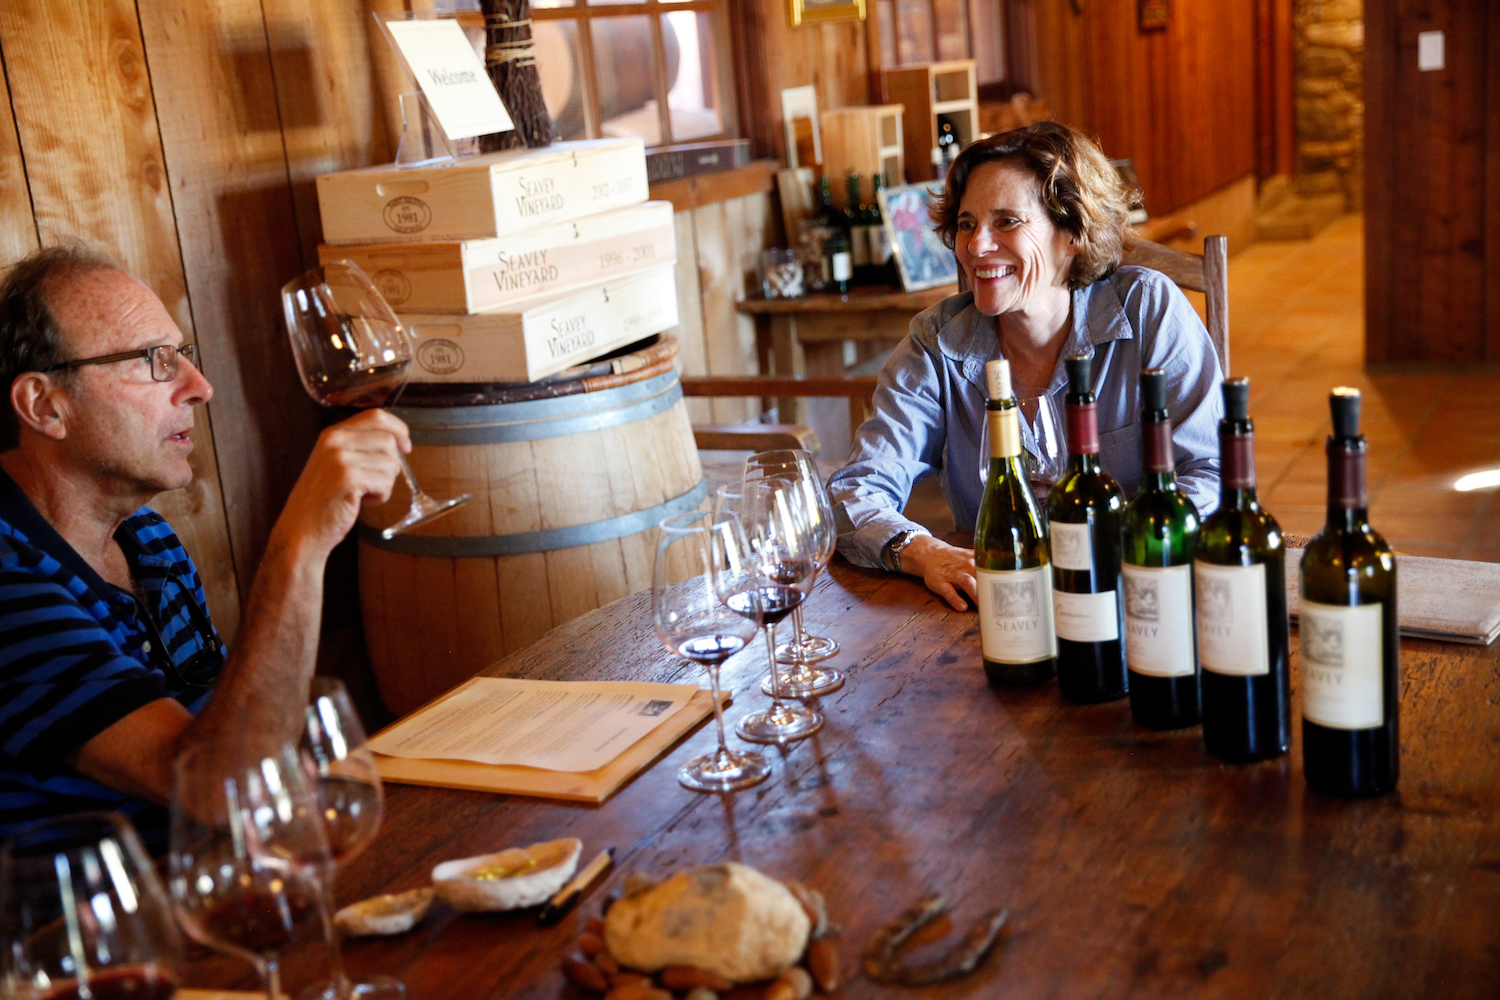 Seavey, Seavey Vineyards, Cabernet, cab